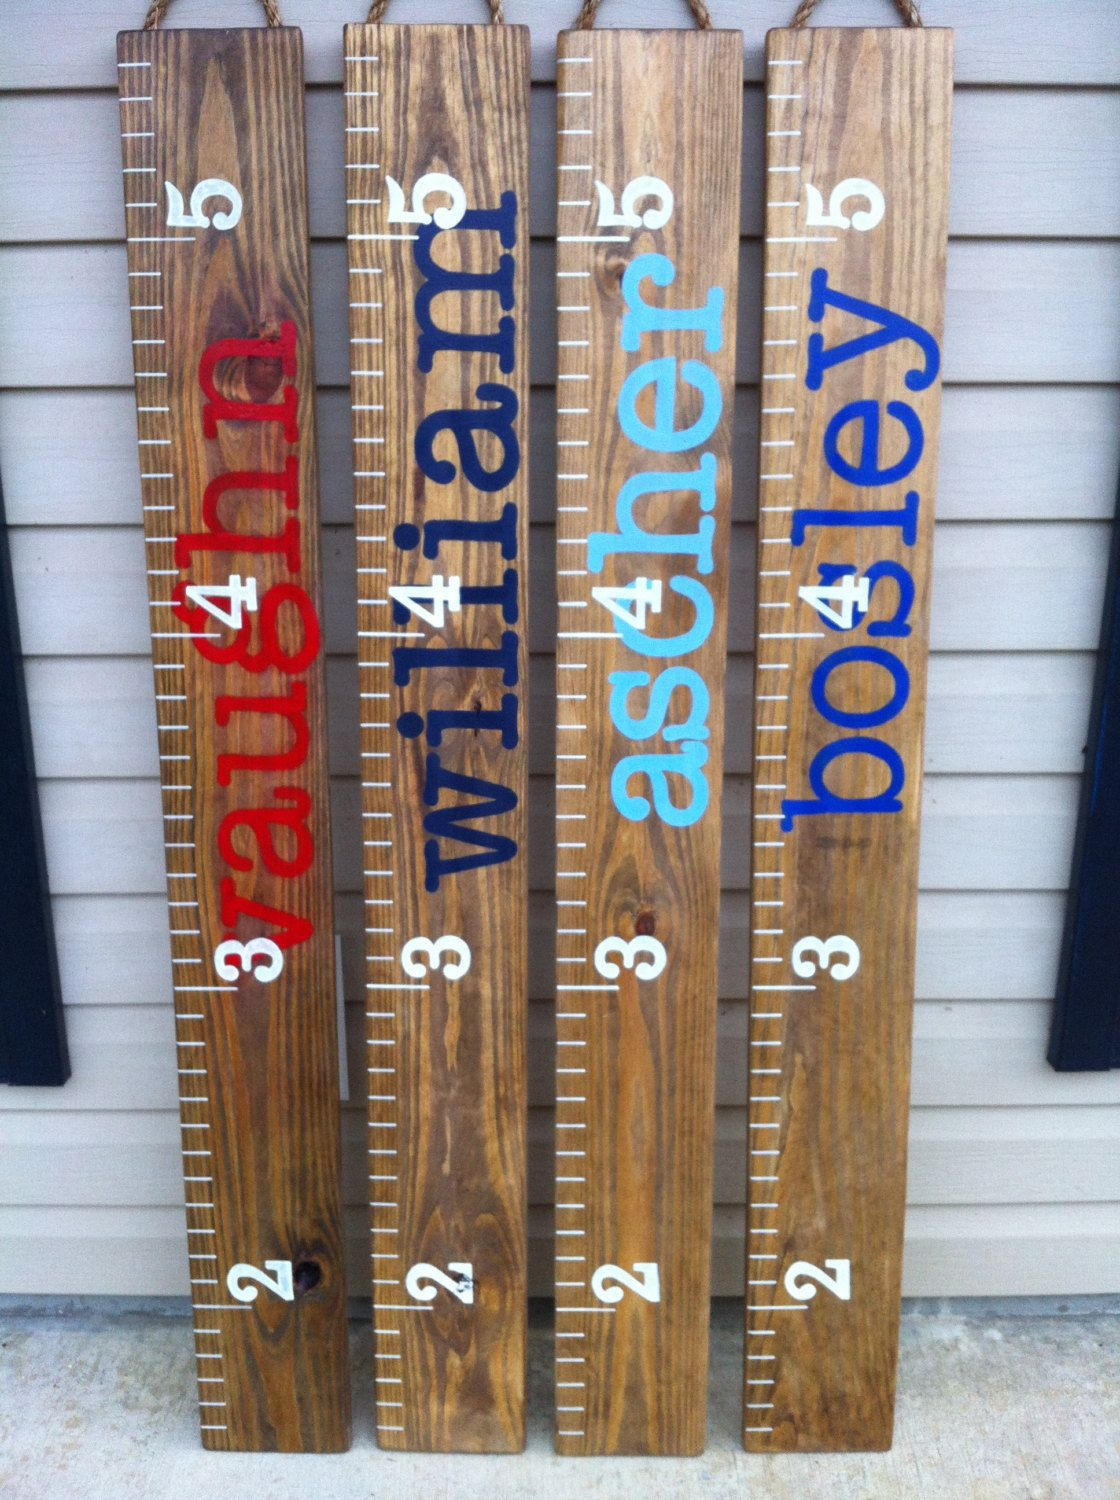 Growth chart toddlers images free any chart examples wood growth chart ruler choice image free any chart examples child growth chart ruler choice image nvjuhfo Images